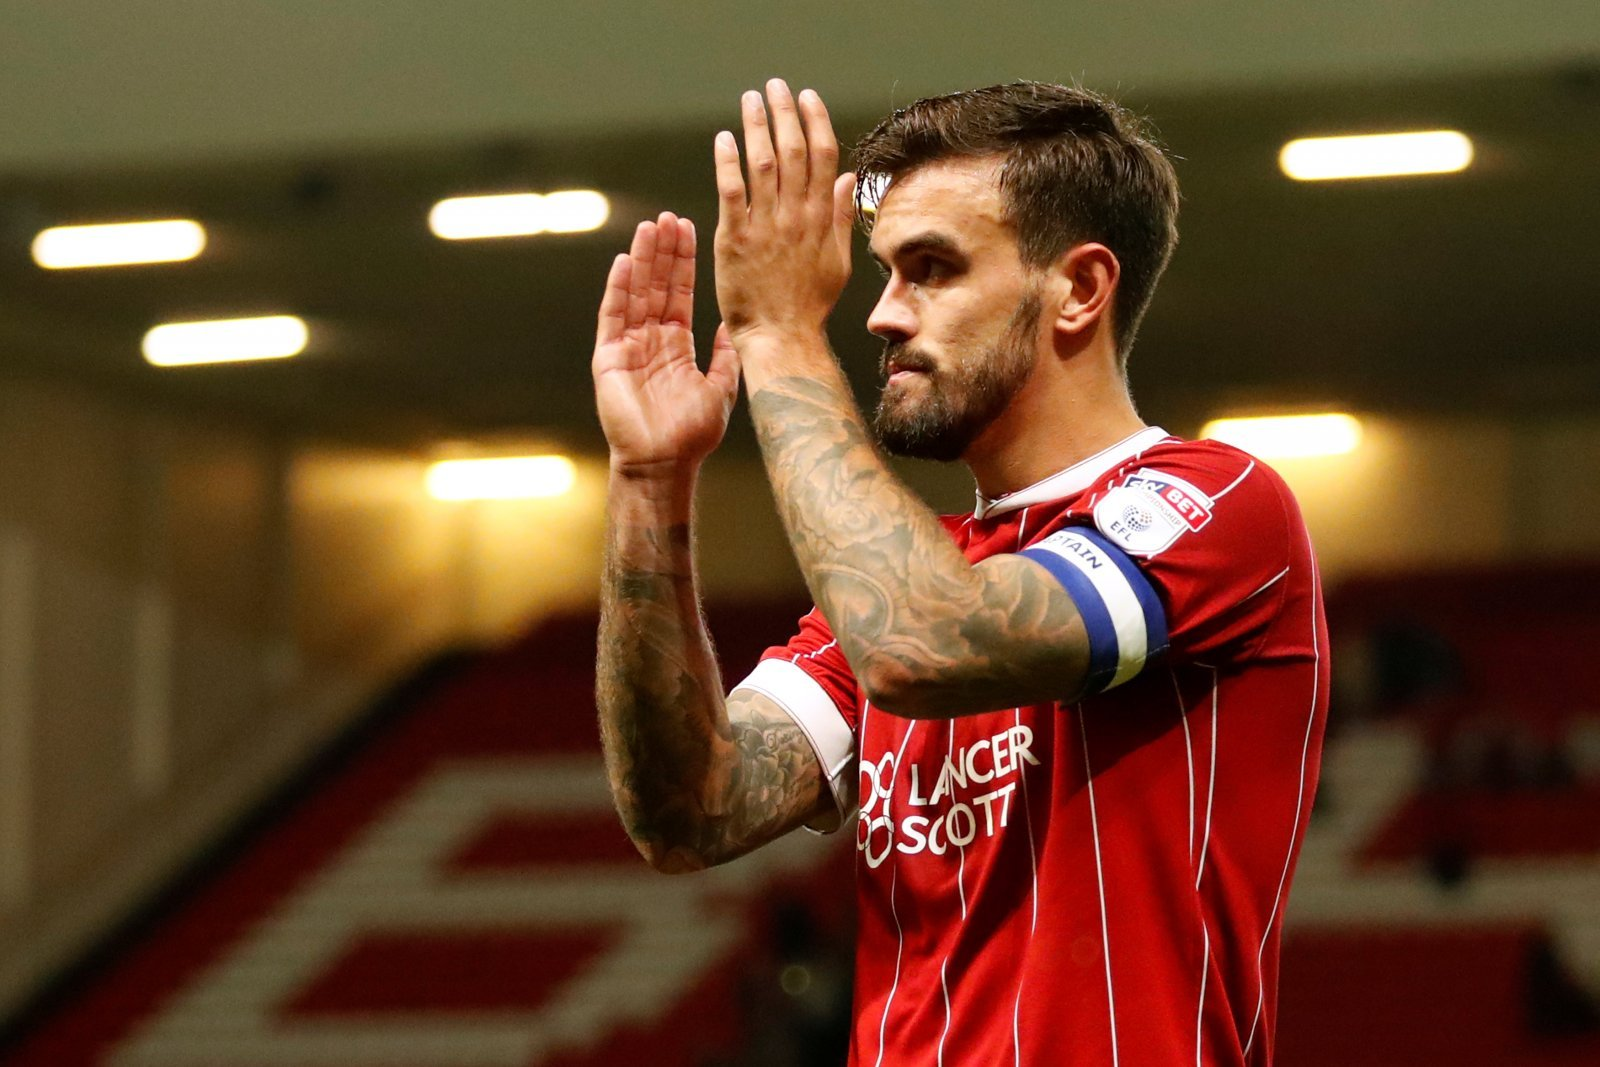 Aden Flint: Bristol City defender signs new contract with Championship club